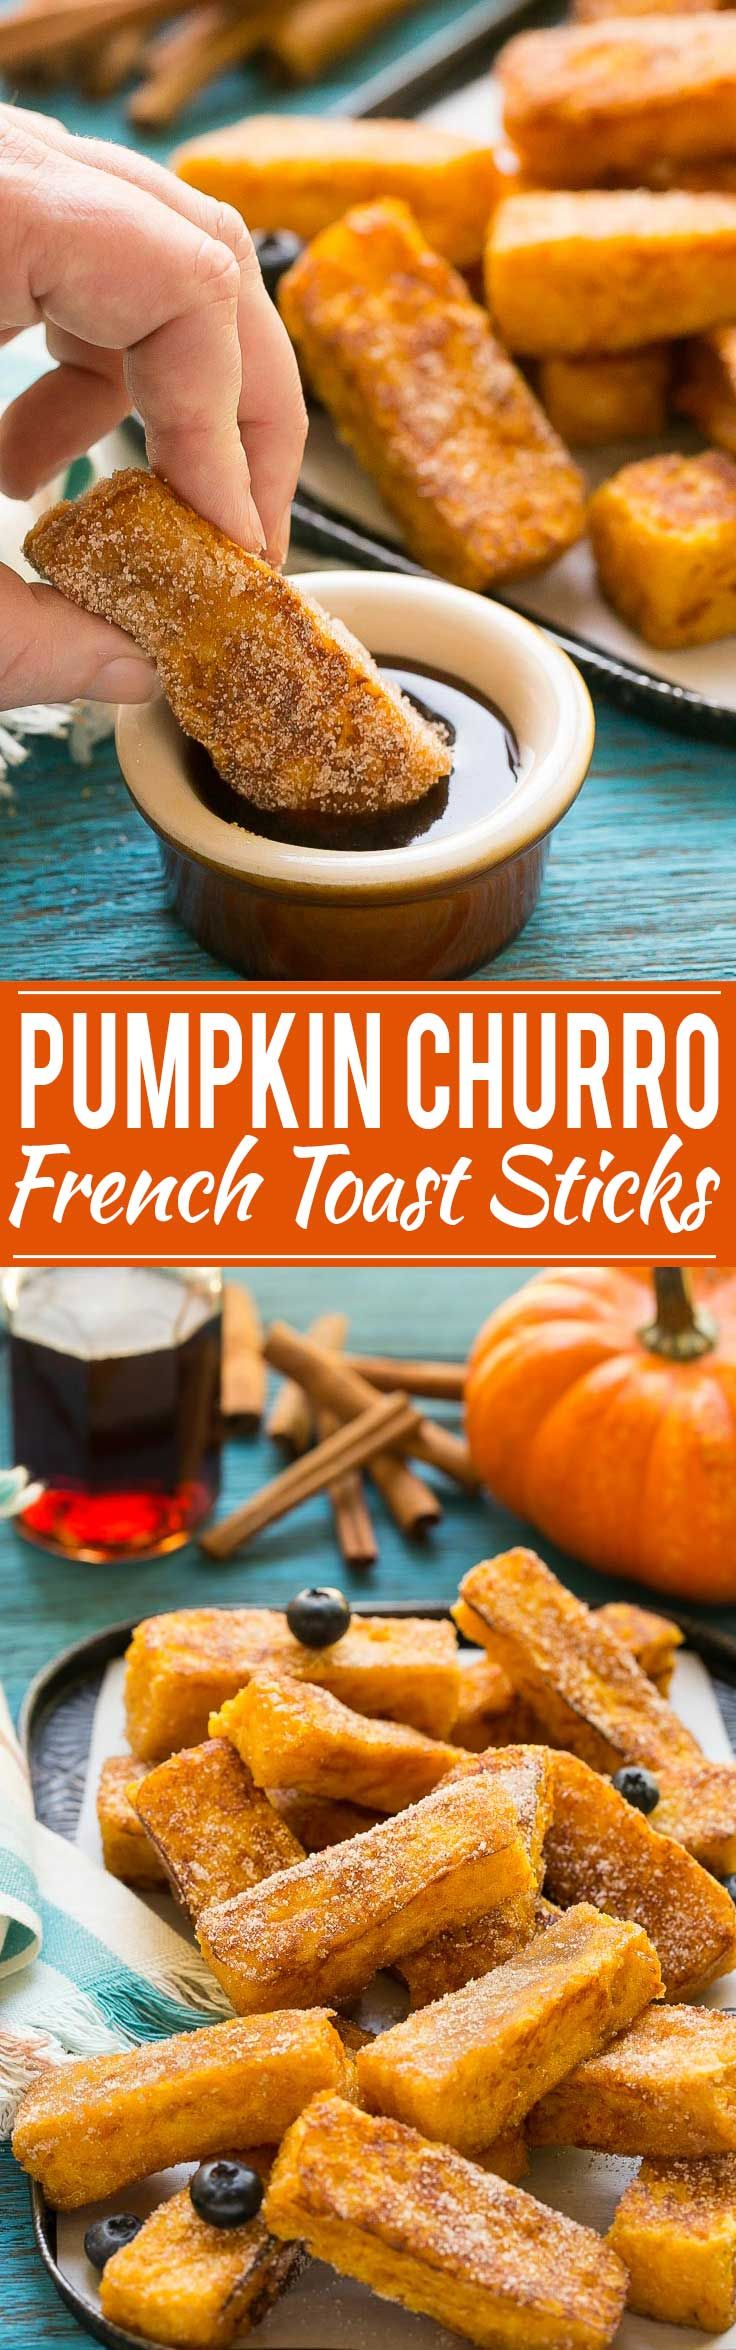 Light and fluffy pumpkin french toast sticks coated in cinnamon sugar. They're…